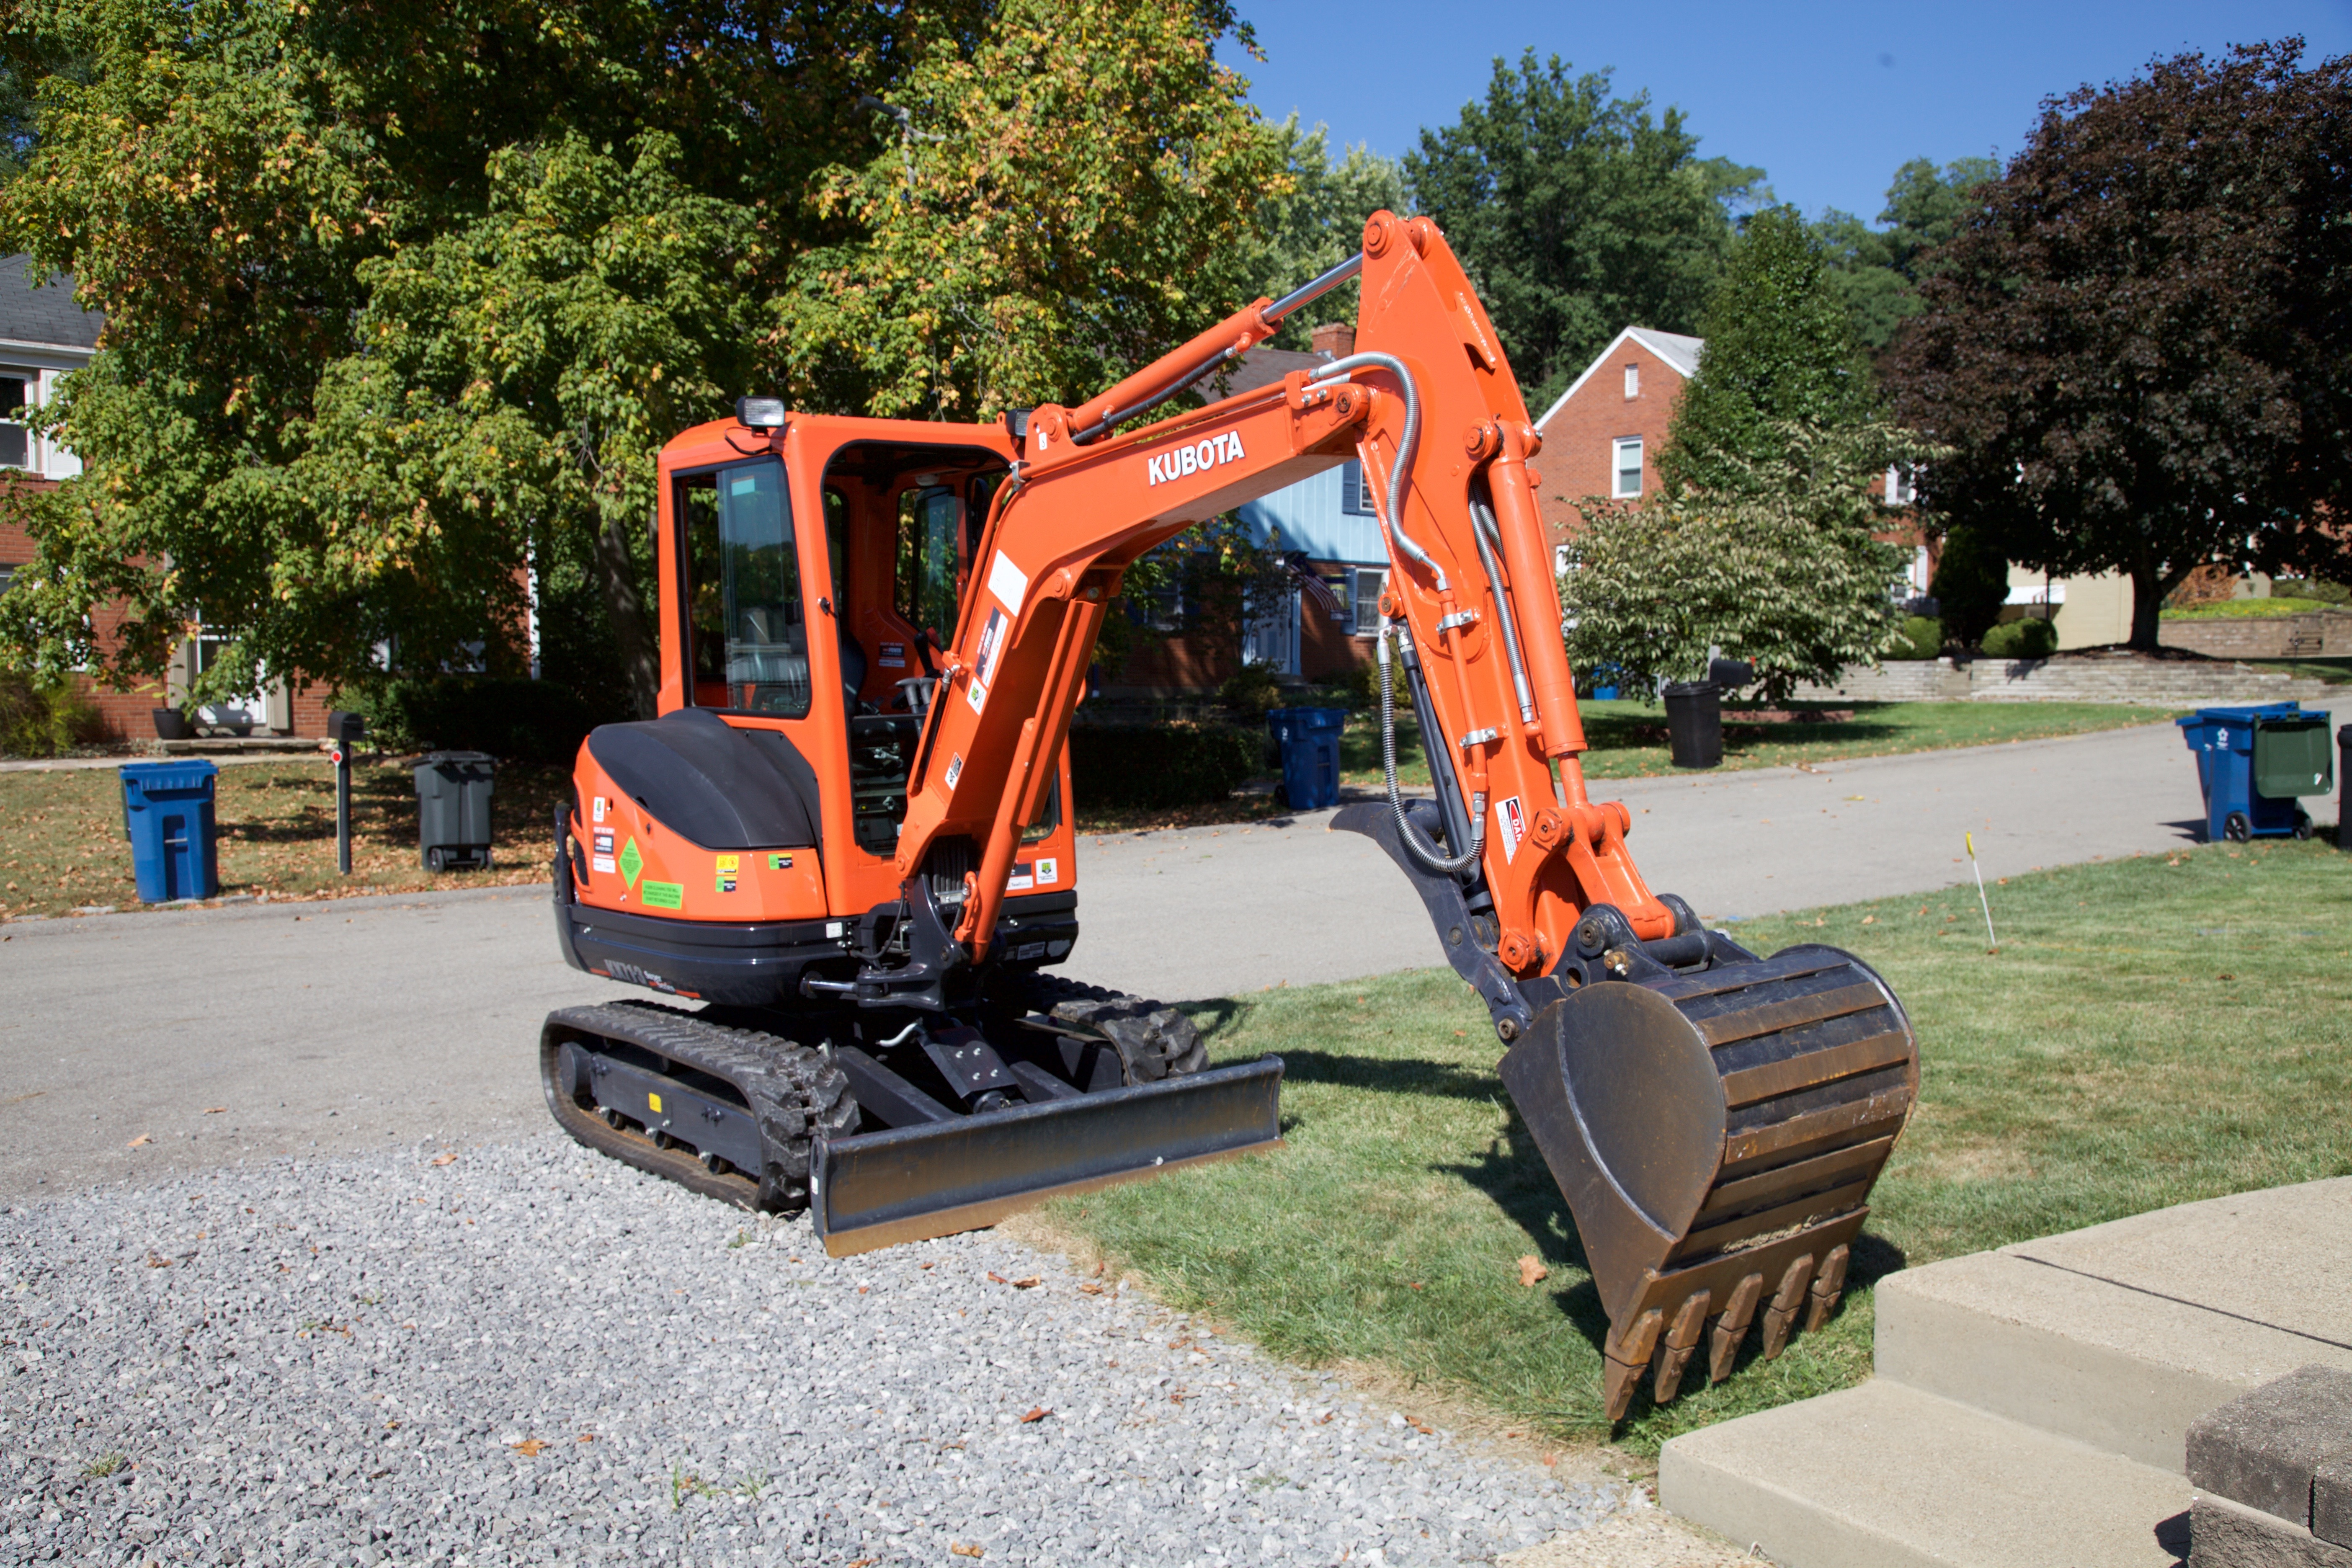 With the Right Preparation, Kubota Mini Excavators are Just More Convenient